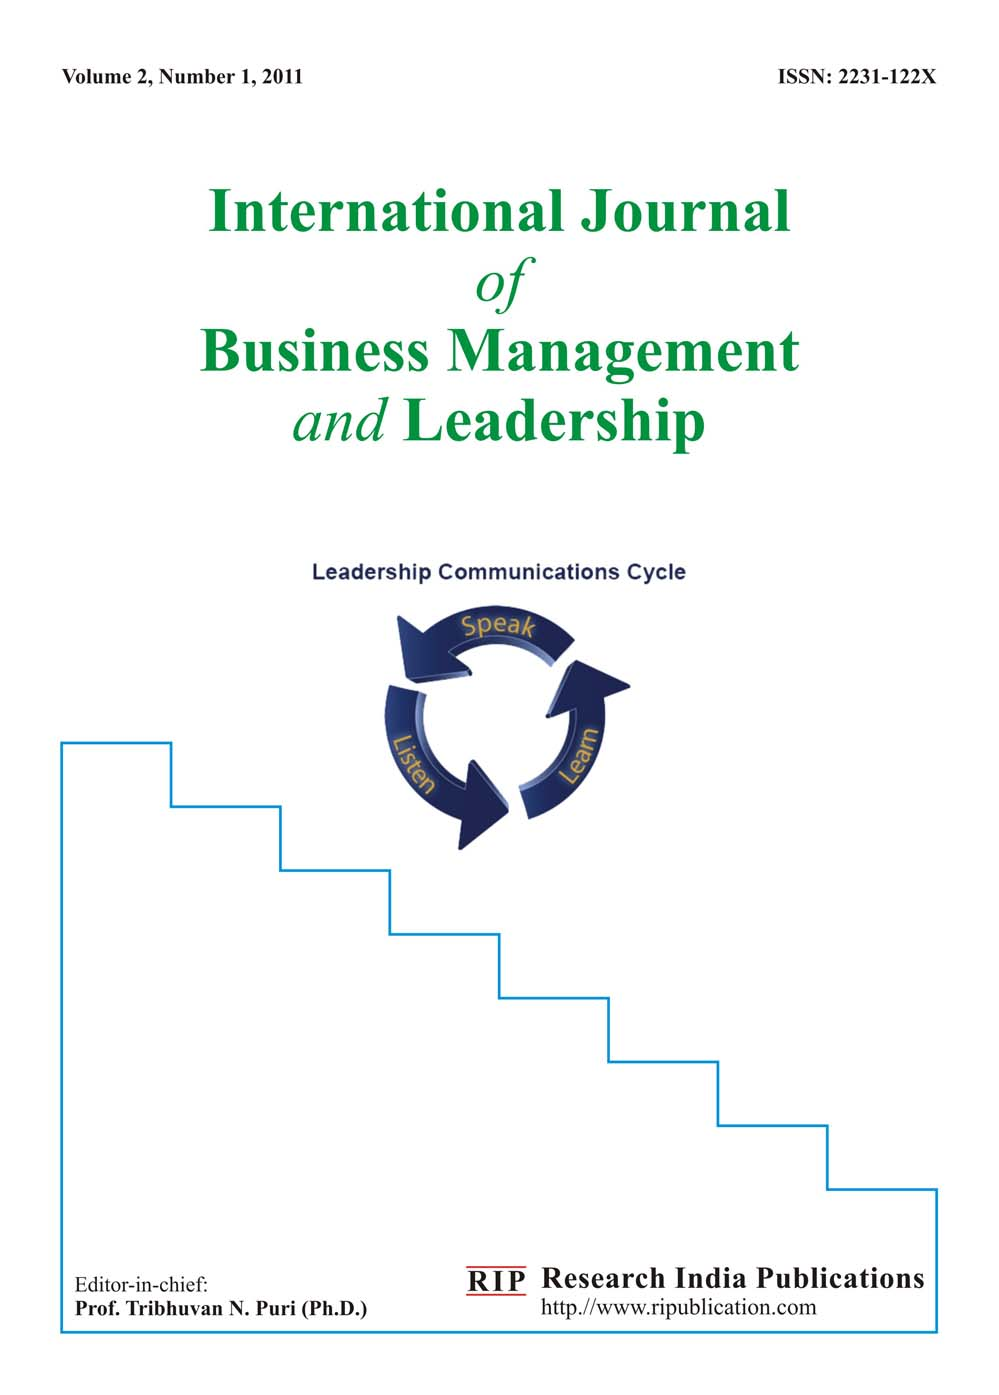 Ijbml International Journal Of Business Management And Leadership Computer Science Journals Journals Publishers Computer Science Journals In India Indian Journals Subscription Agency Indian Books Distributors